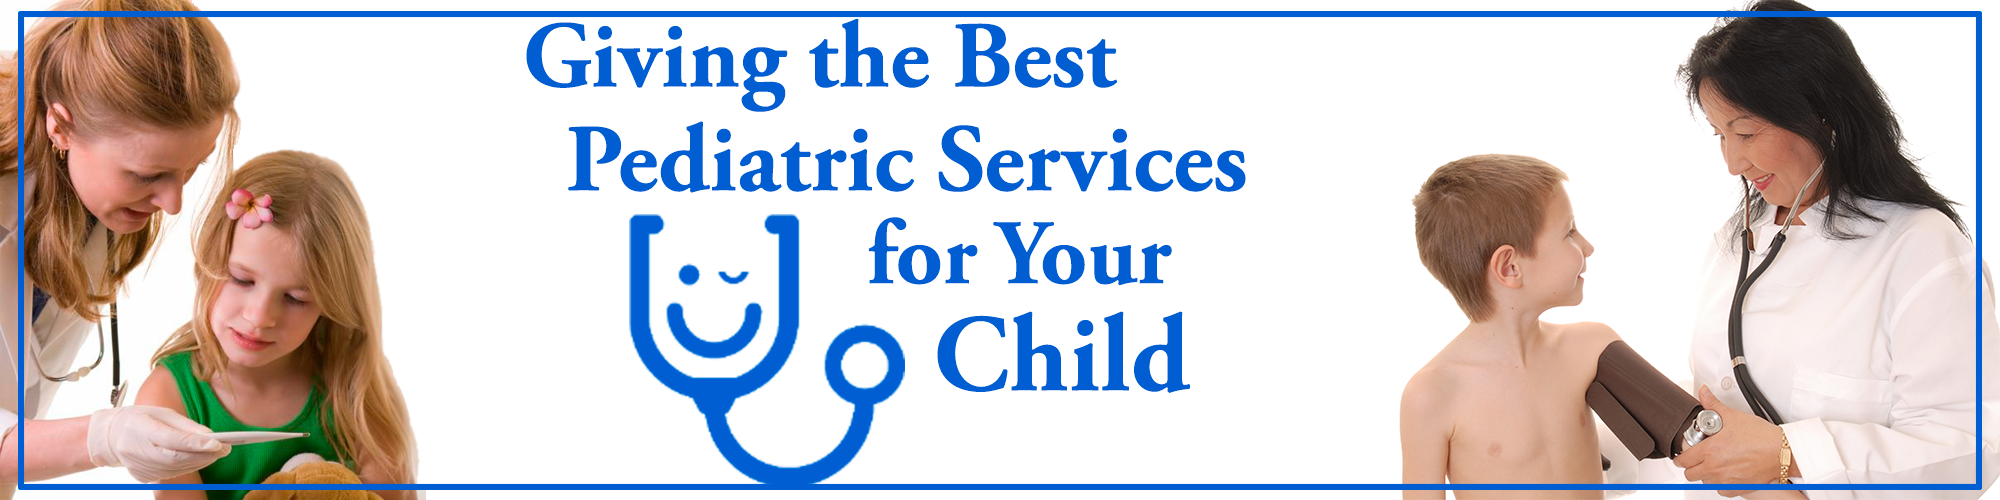 Giving The Best Pediatric Services for Your Child